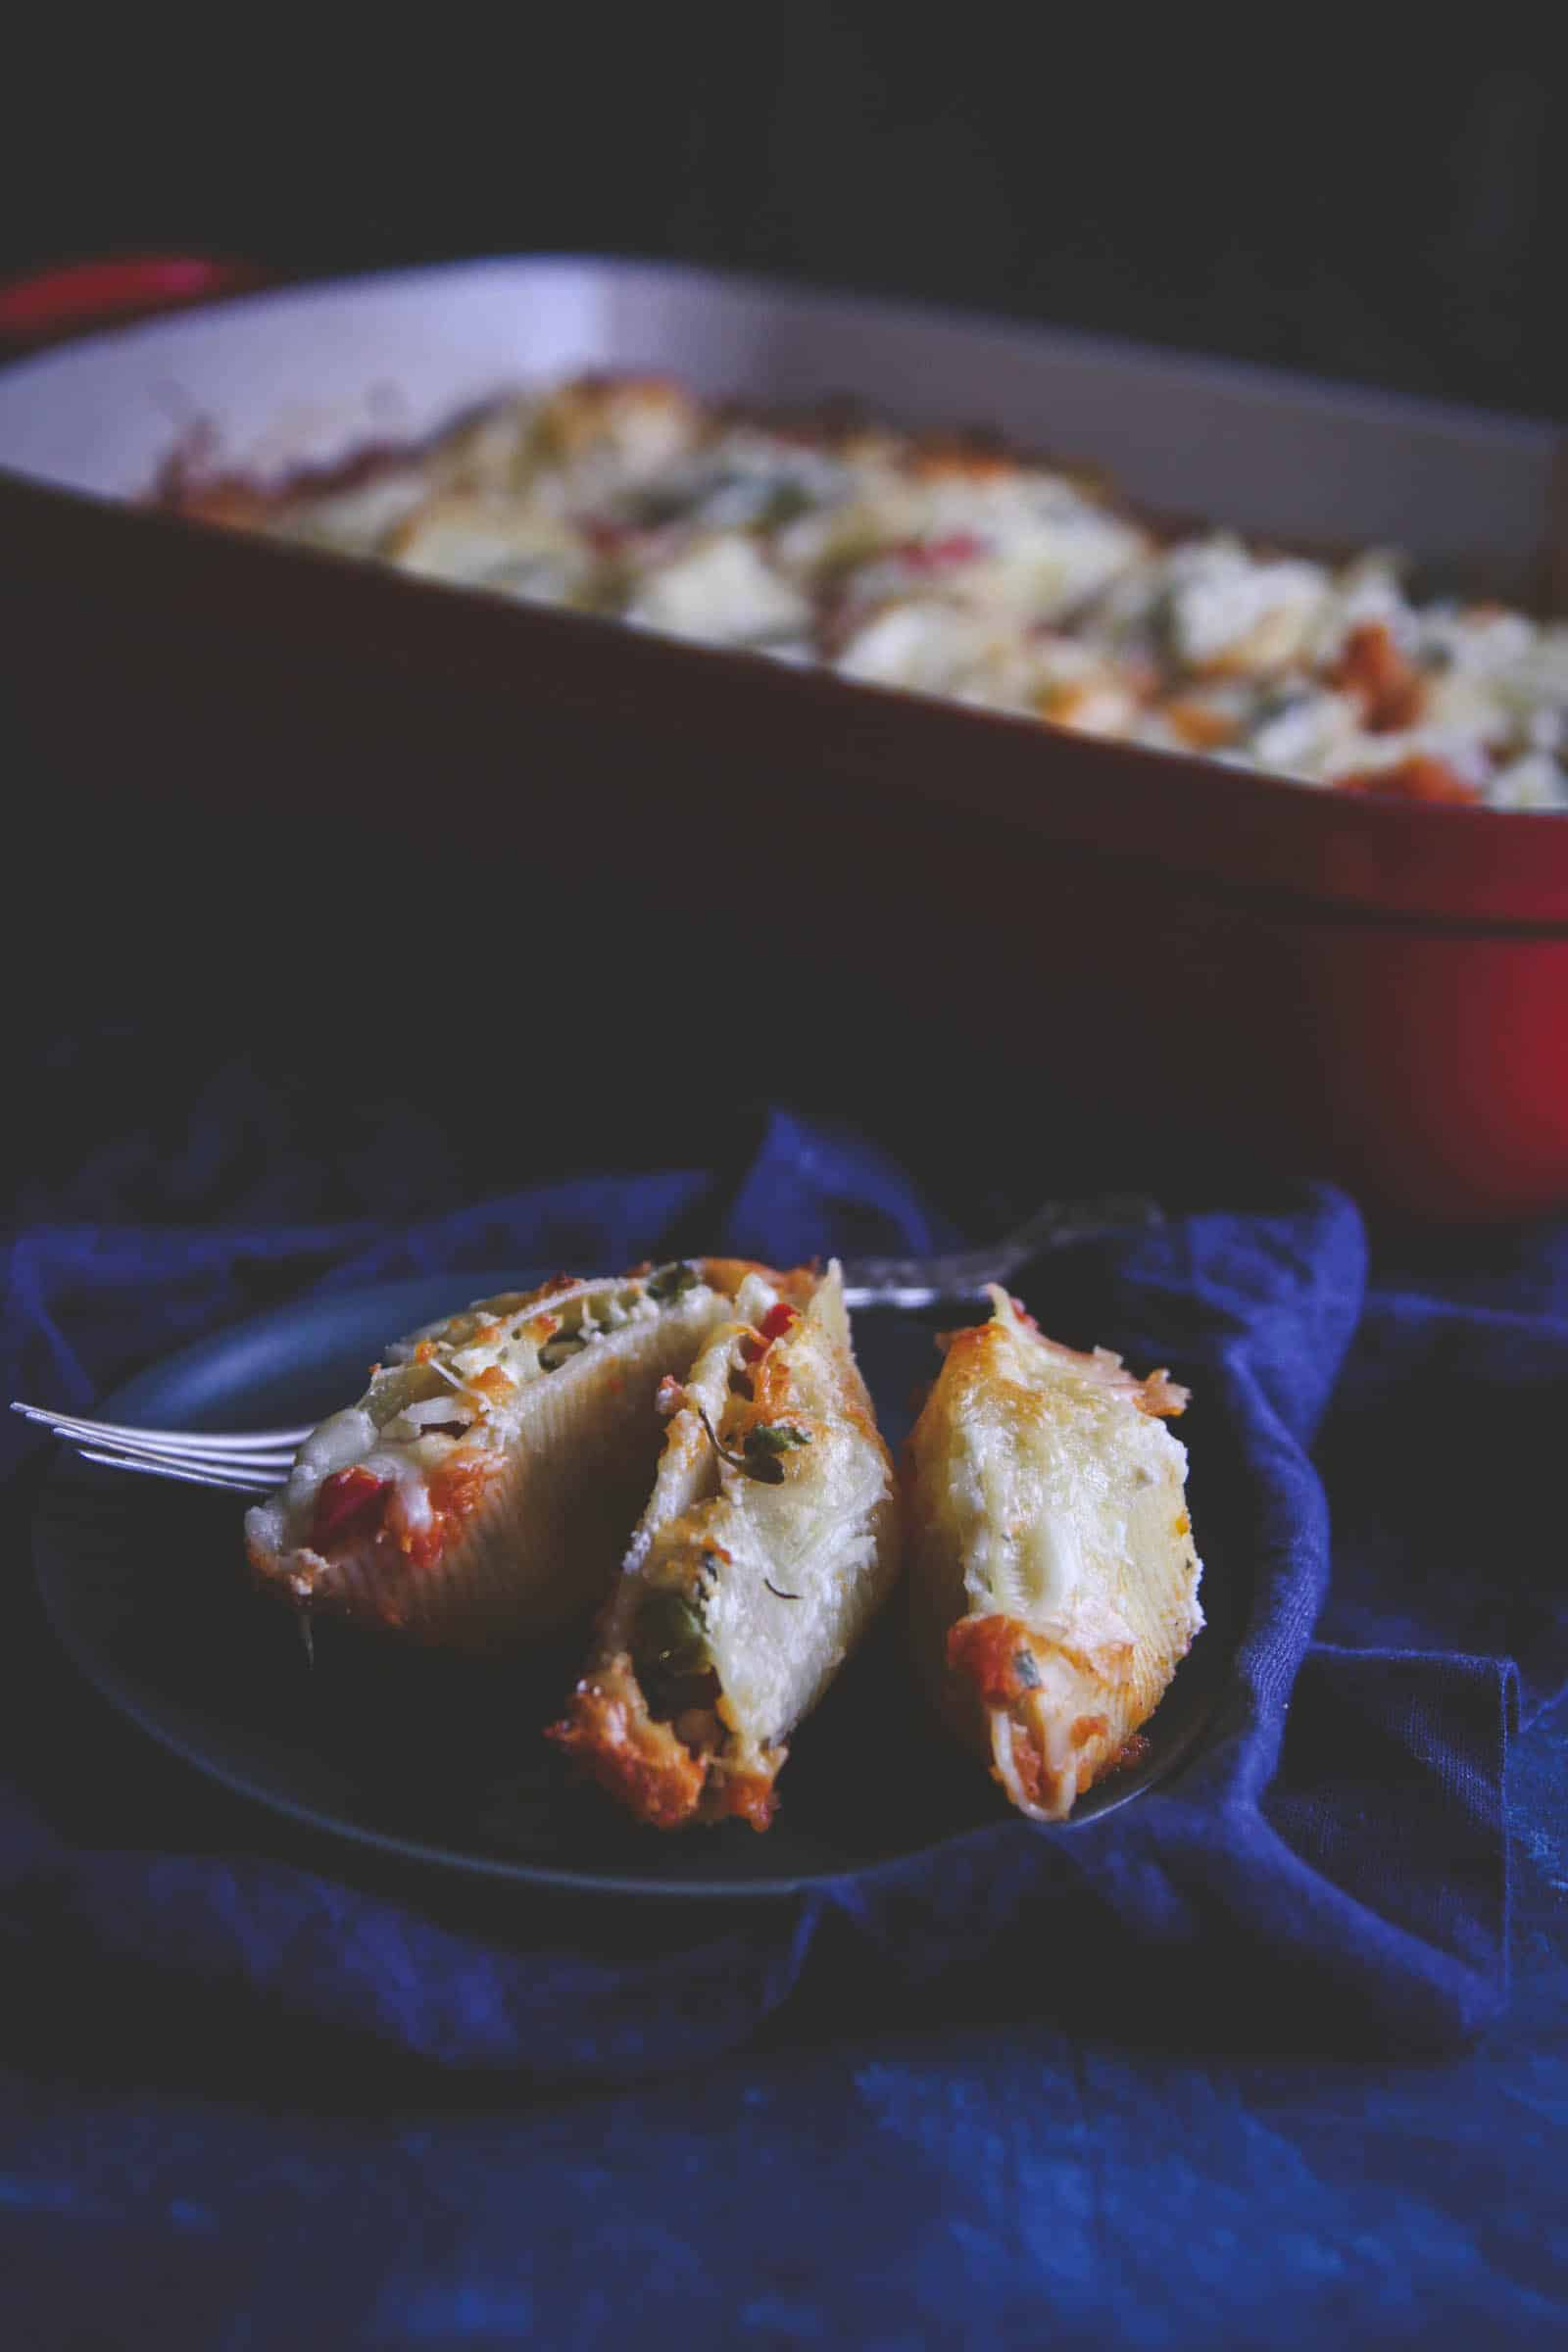 roasted vegetable stuffed shells recipe. A delicious meatless Monday vegetarian dinner recipe